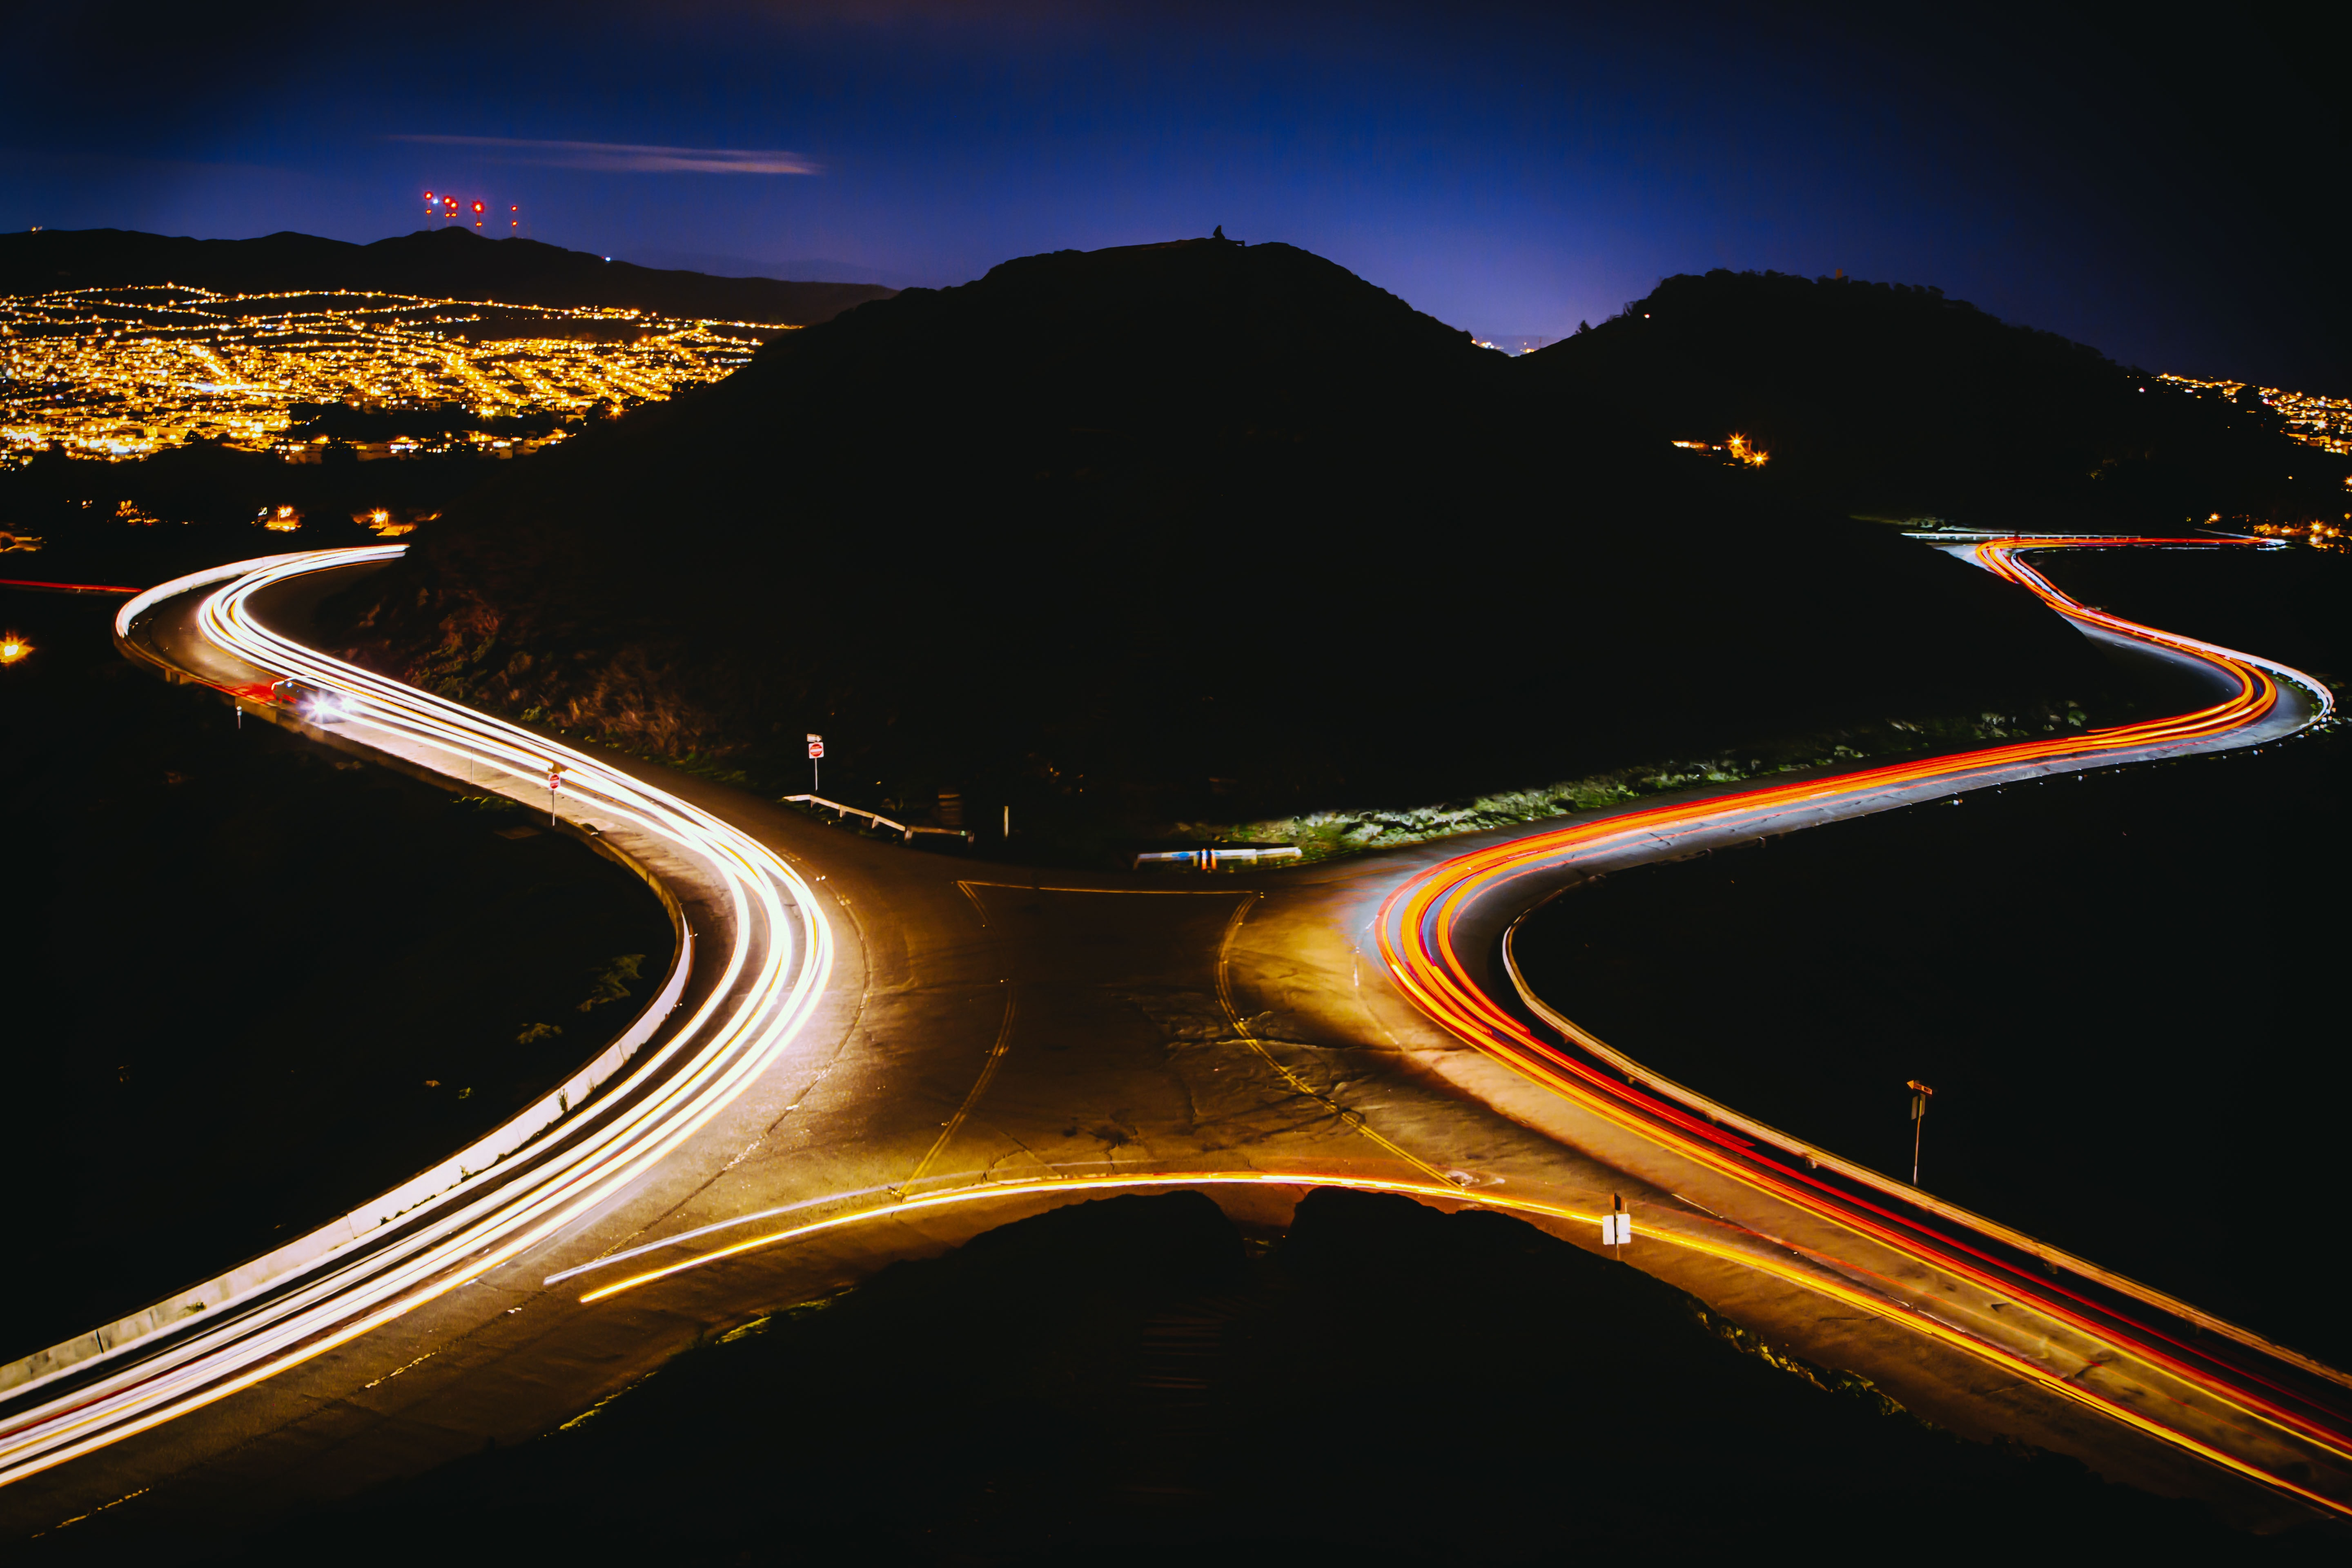 aerial view photography of cross road near mountain during nighttime